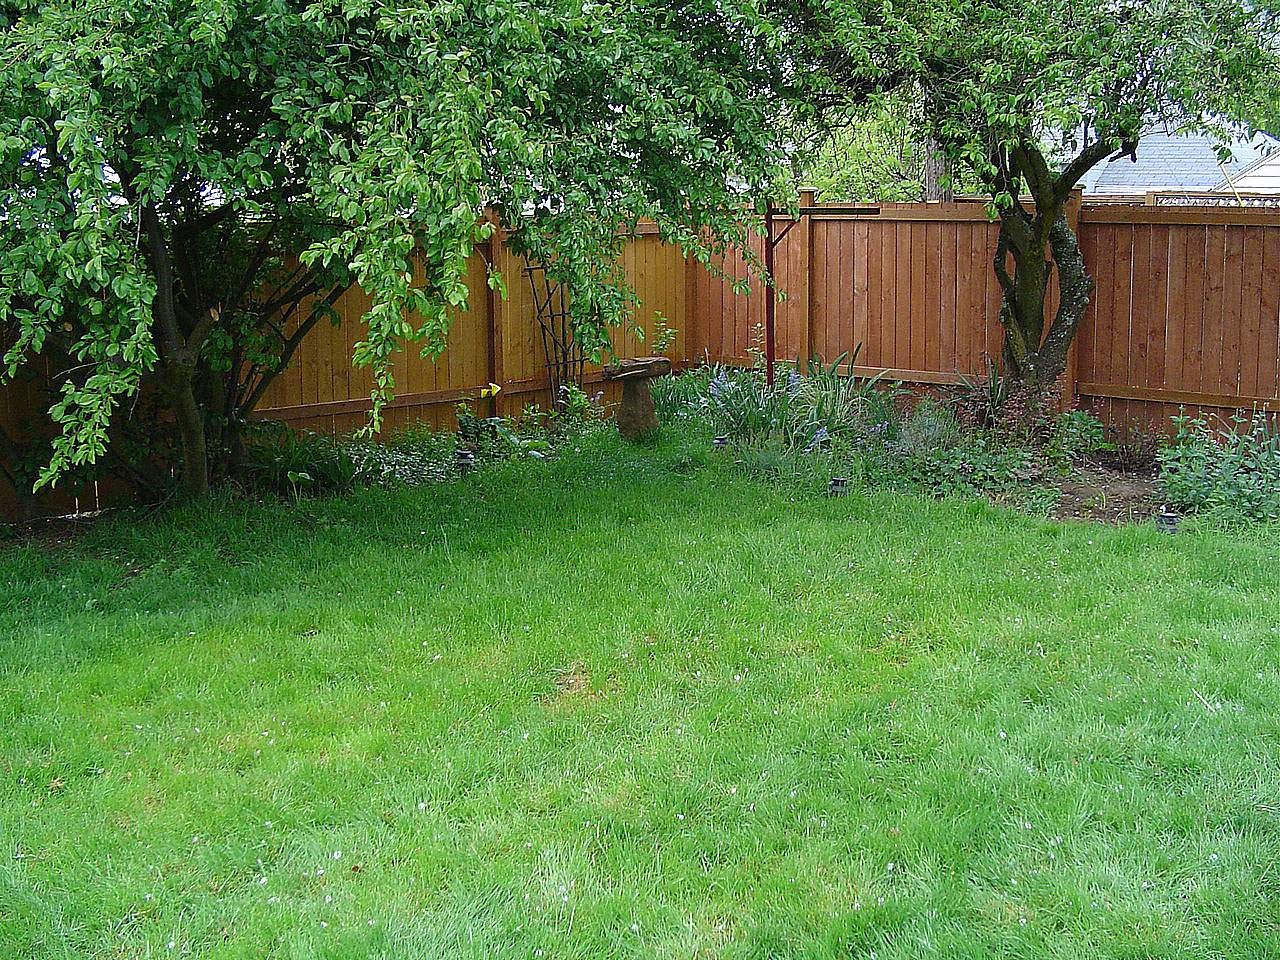 Friend Built Pretty Easy Also Had Chain Link Fence